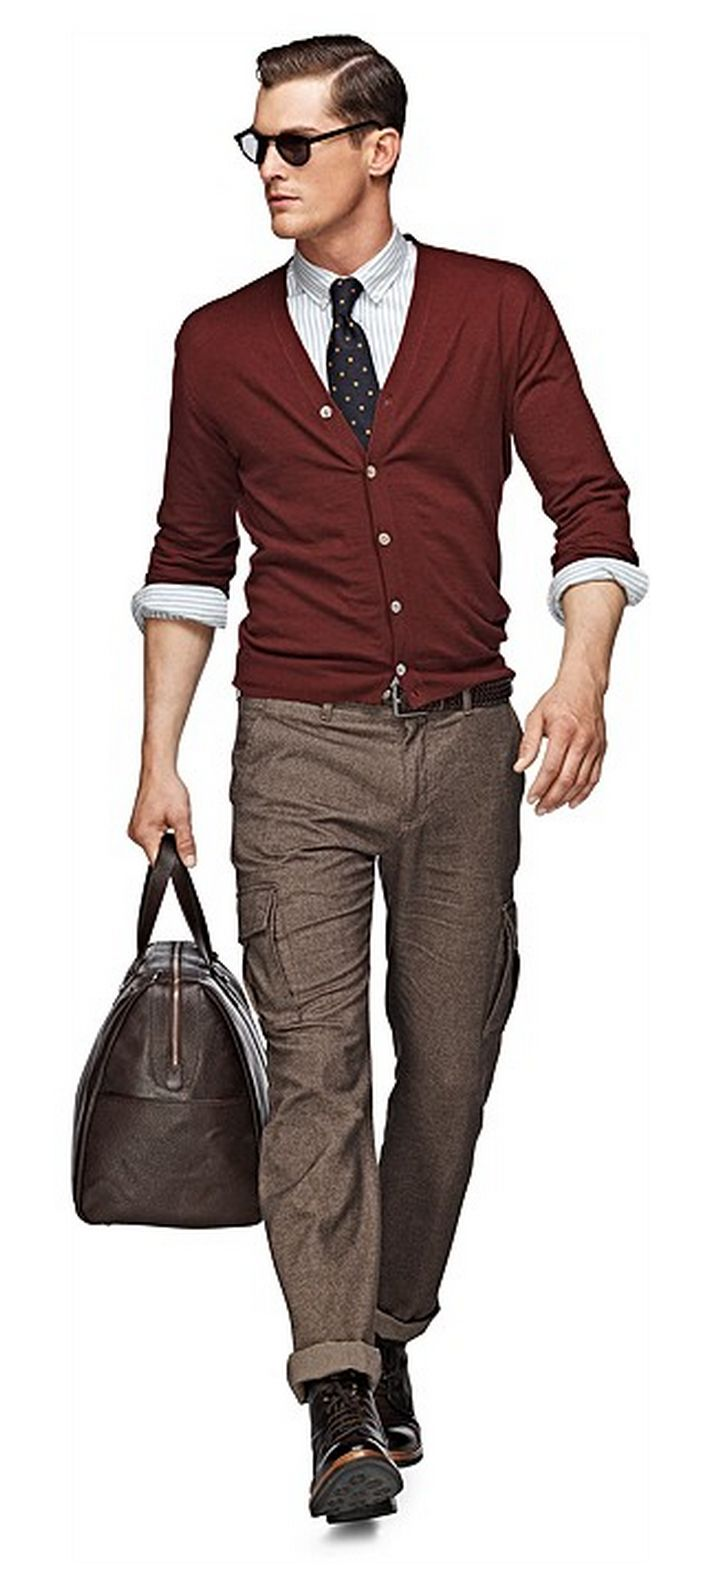 Nice look...cool and sophisticated. The color of the cardigan is really great and I love the pants!